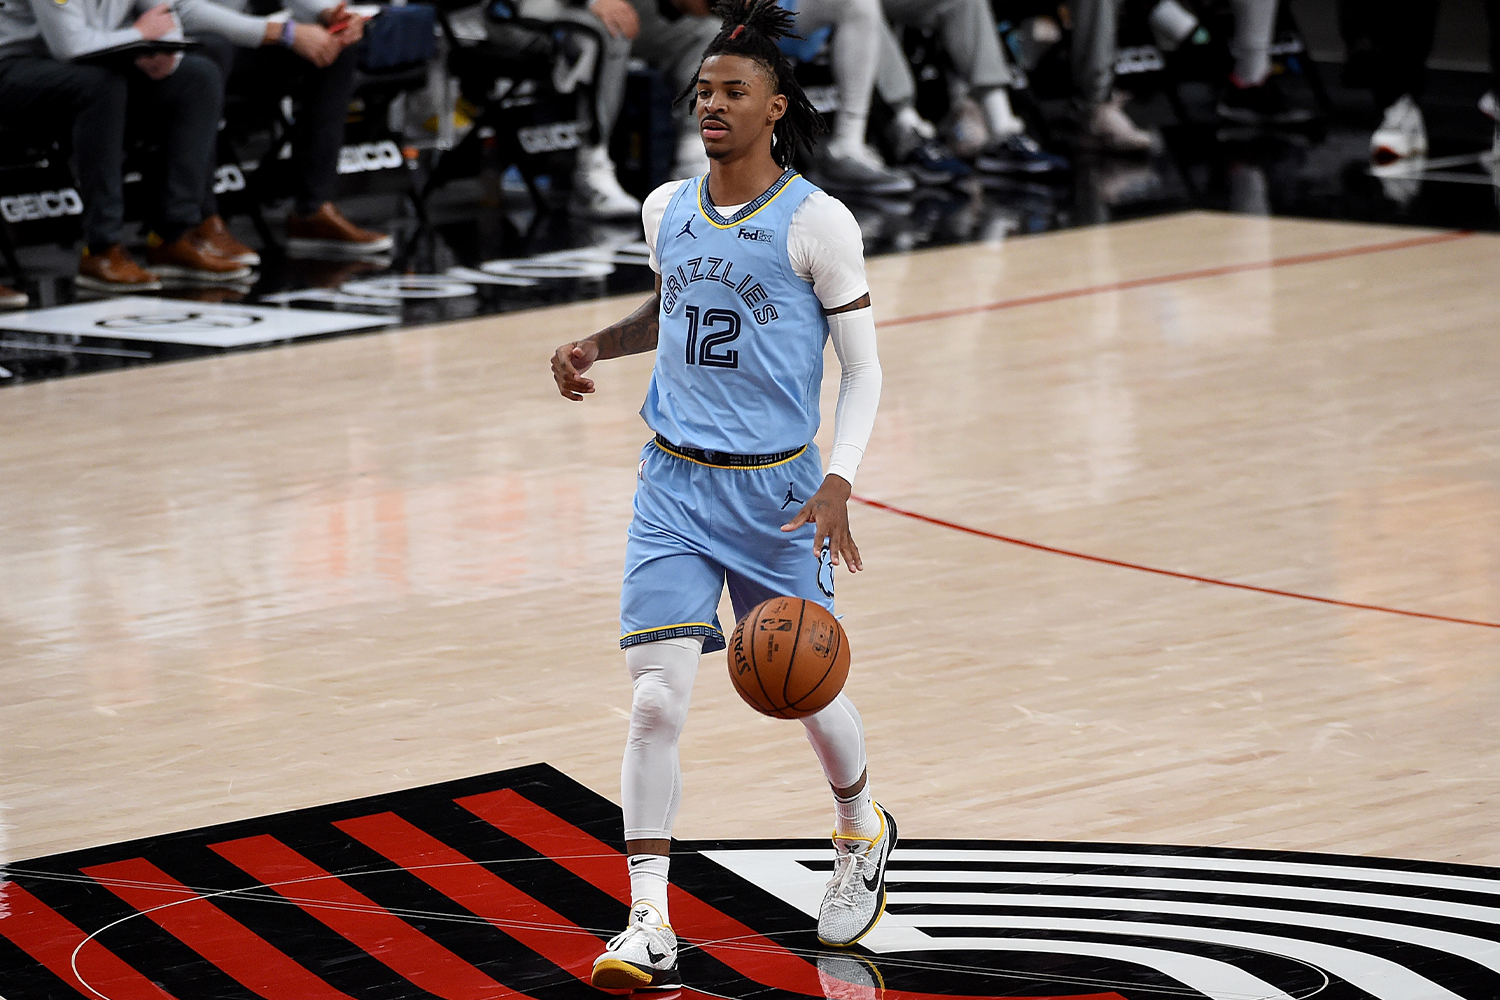 Ja Morant #12 of the Memphis Grizzlies brings the ball up the court during the first half of the game against the Portland Trail Blazers